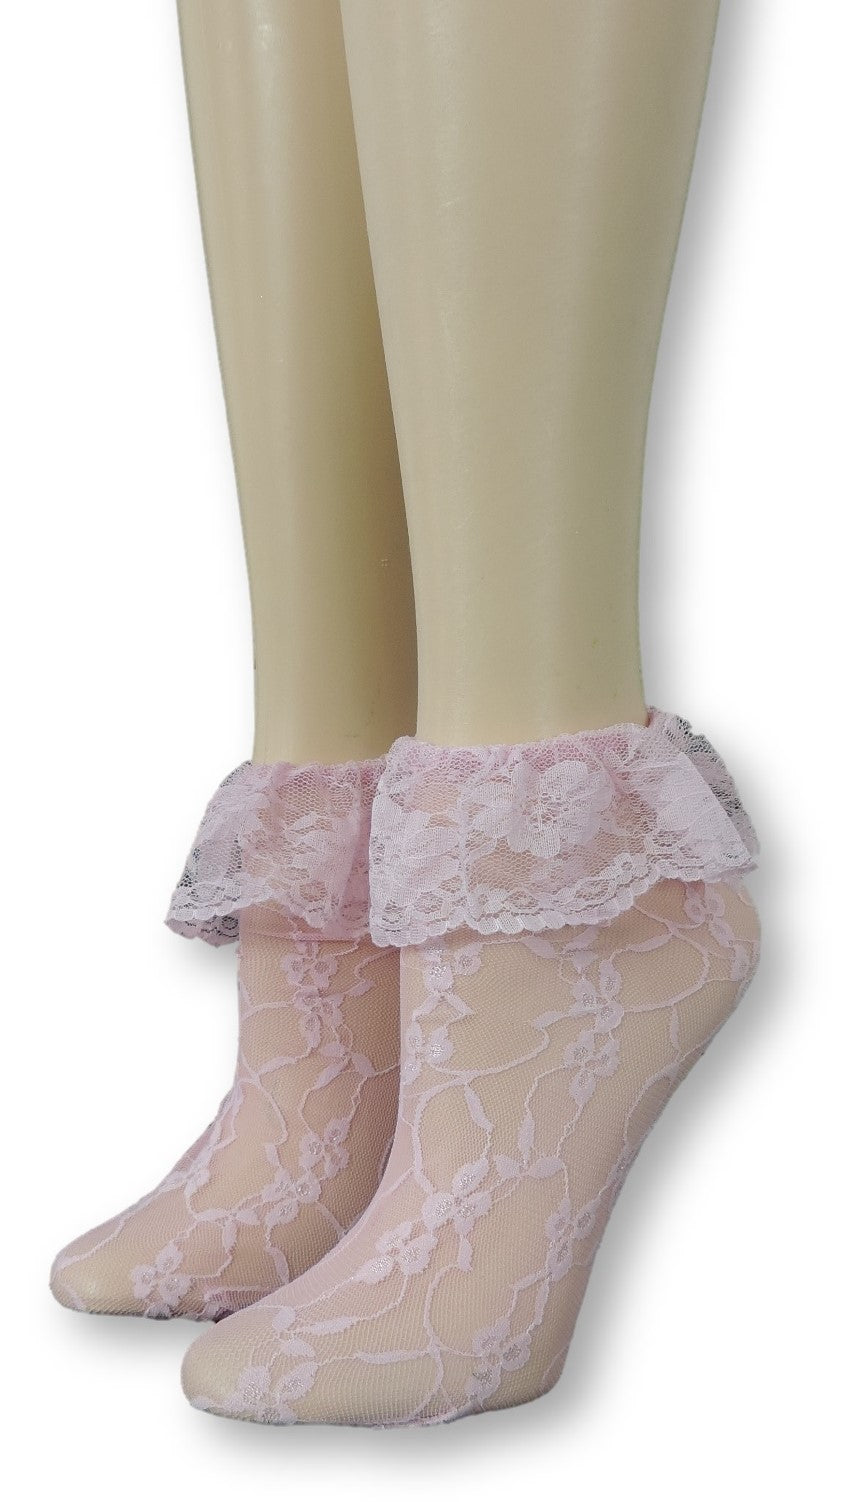 Rose Pink Mesh Socks with edging lace - Global Trendz Fashion®